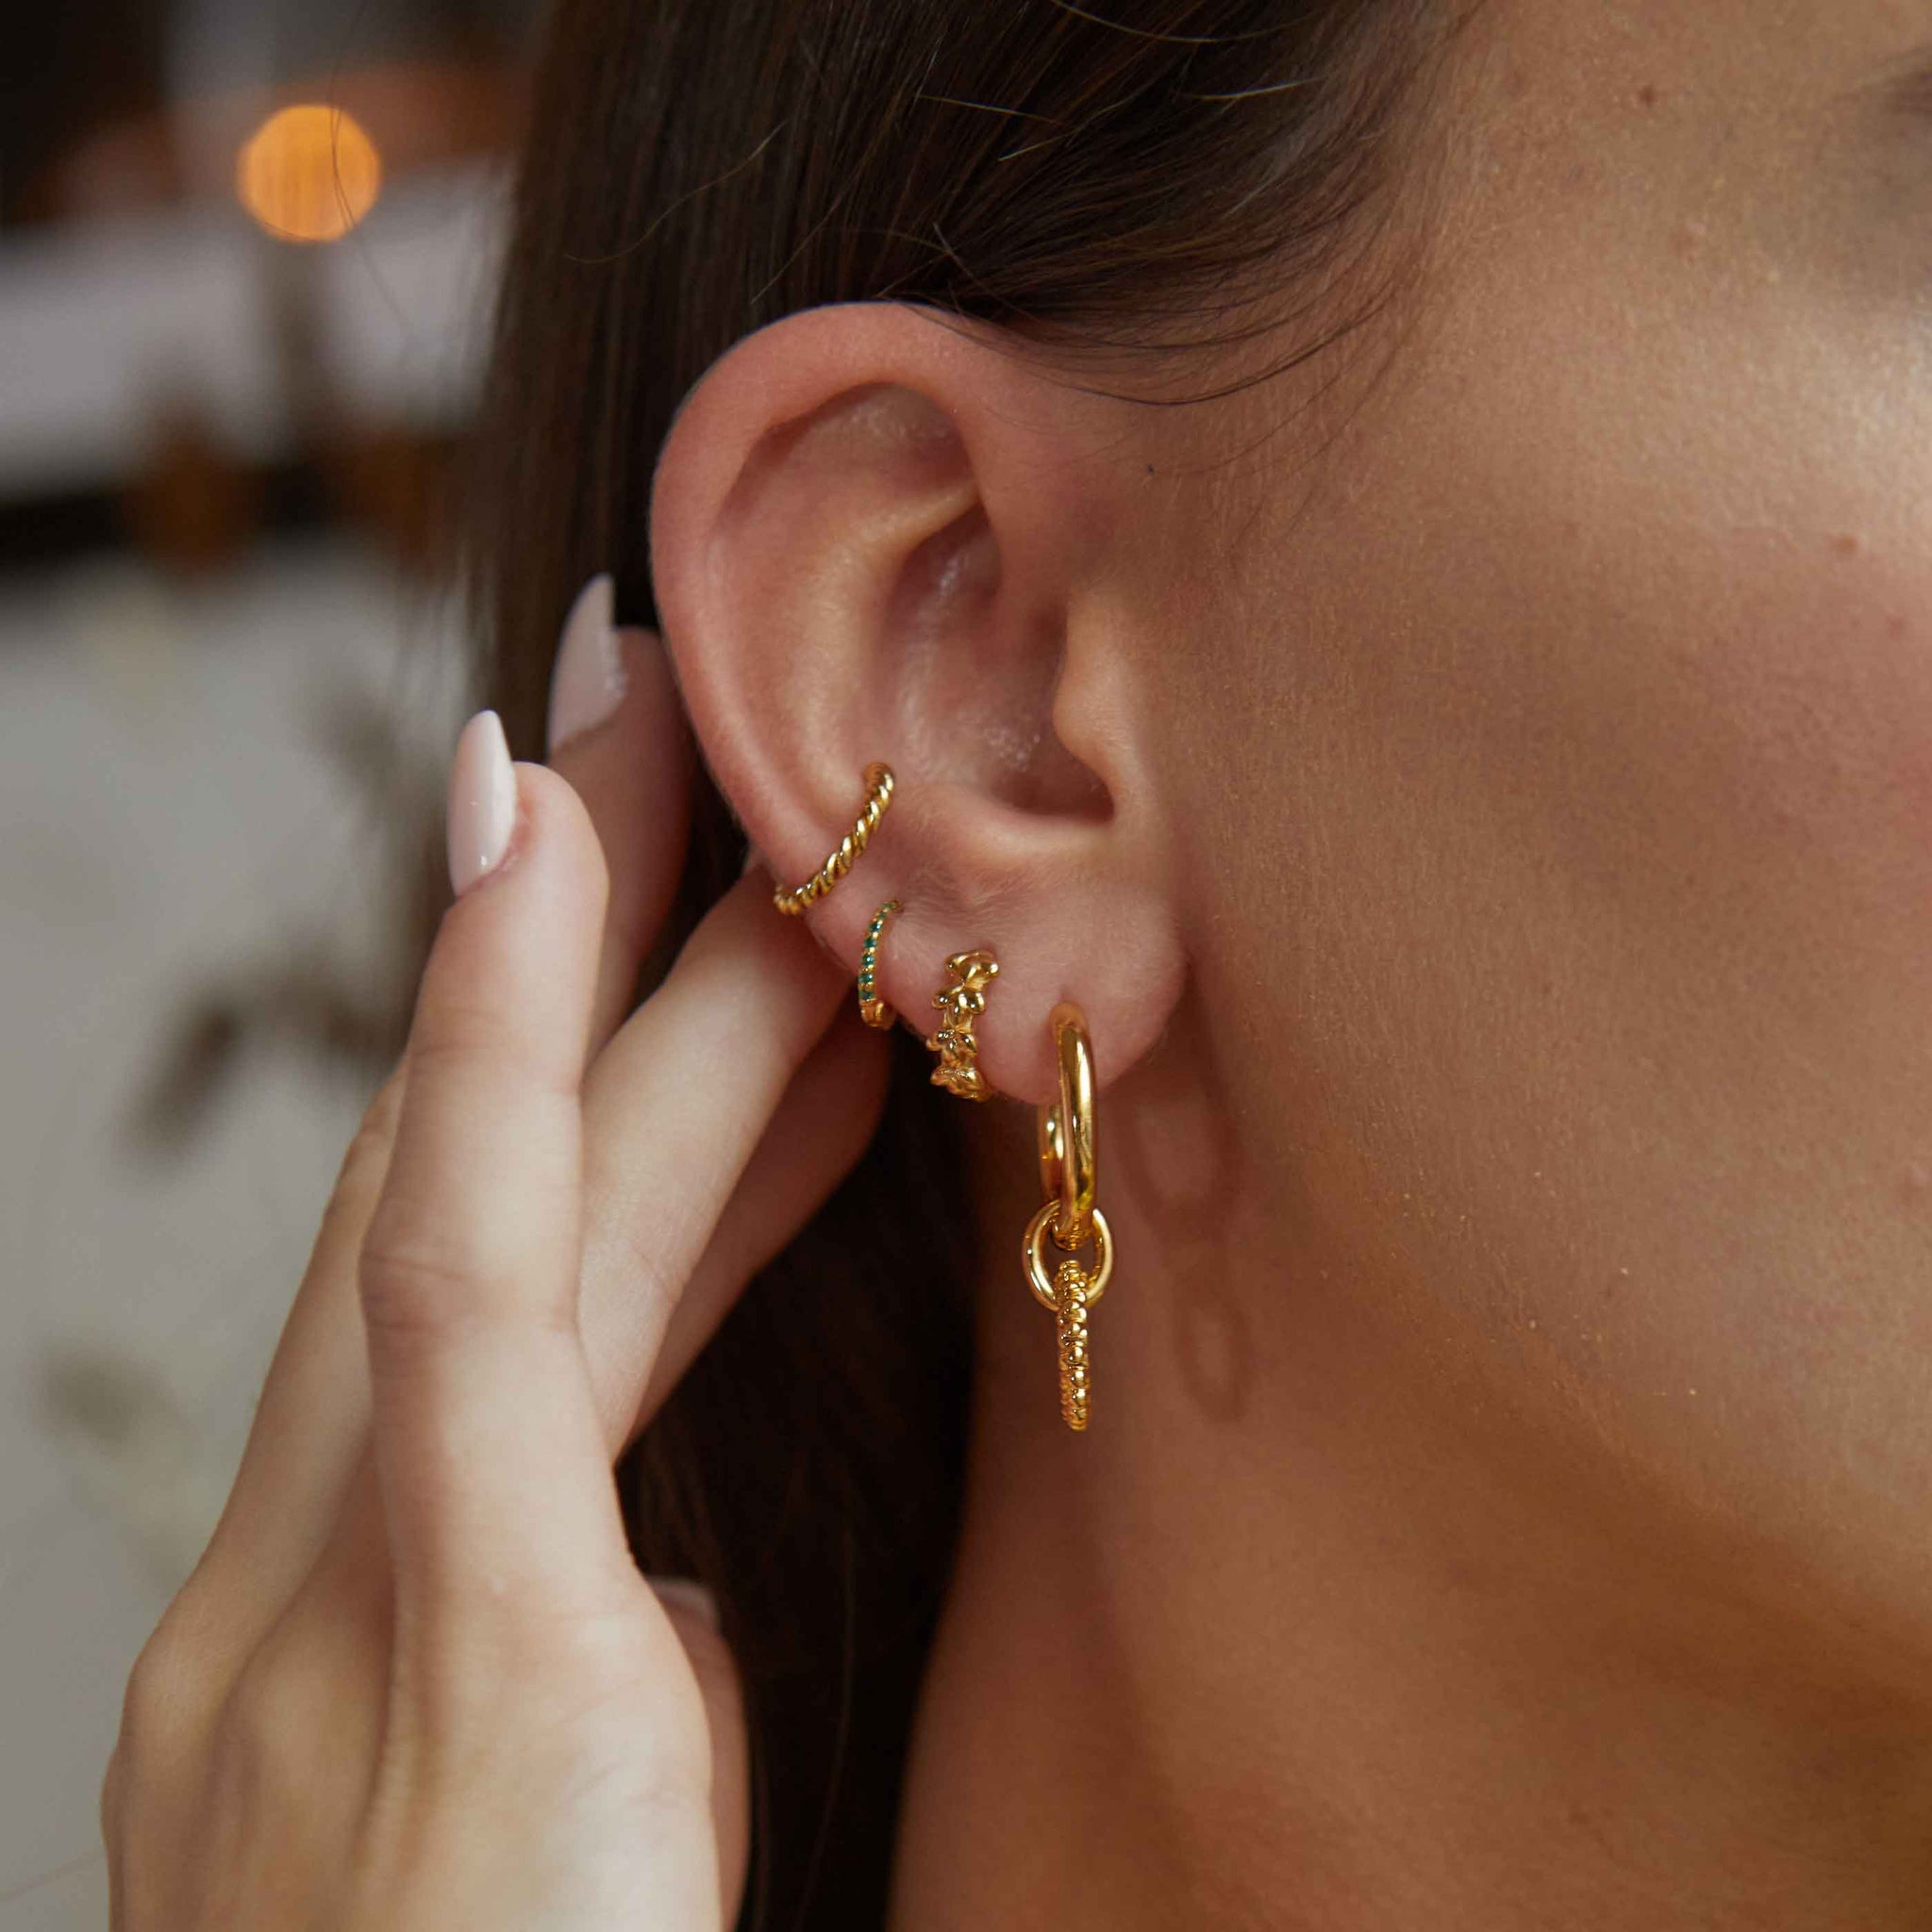 Rope Ear Cuff in Gold worn with huggies